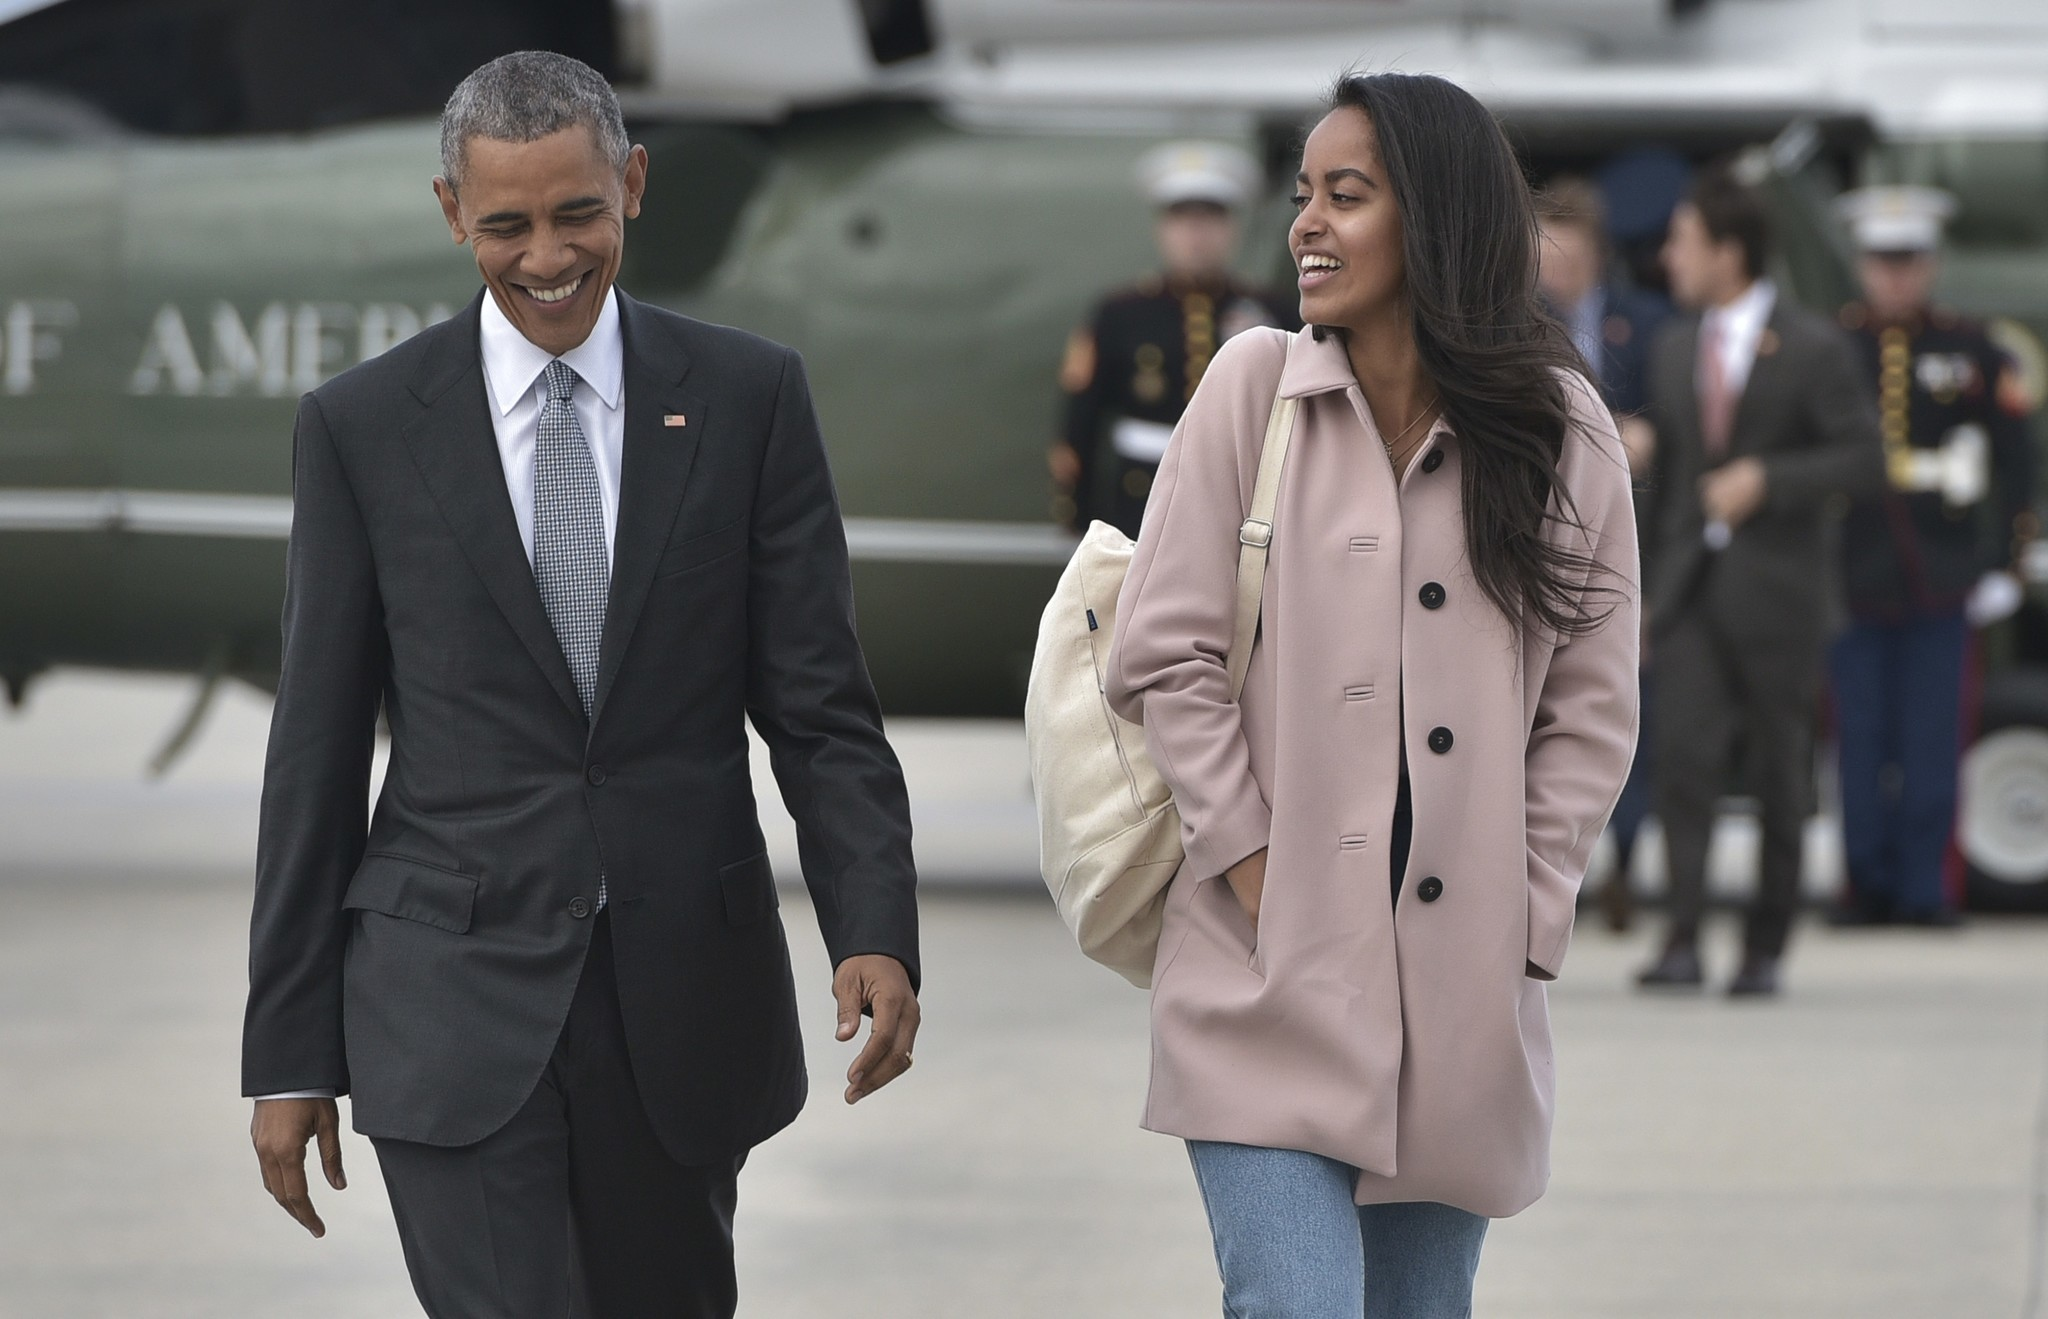 Who's the comedian who told Malia Obama to 'Please shut the f--- up' during standup routine?